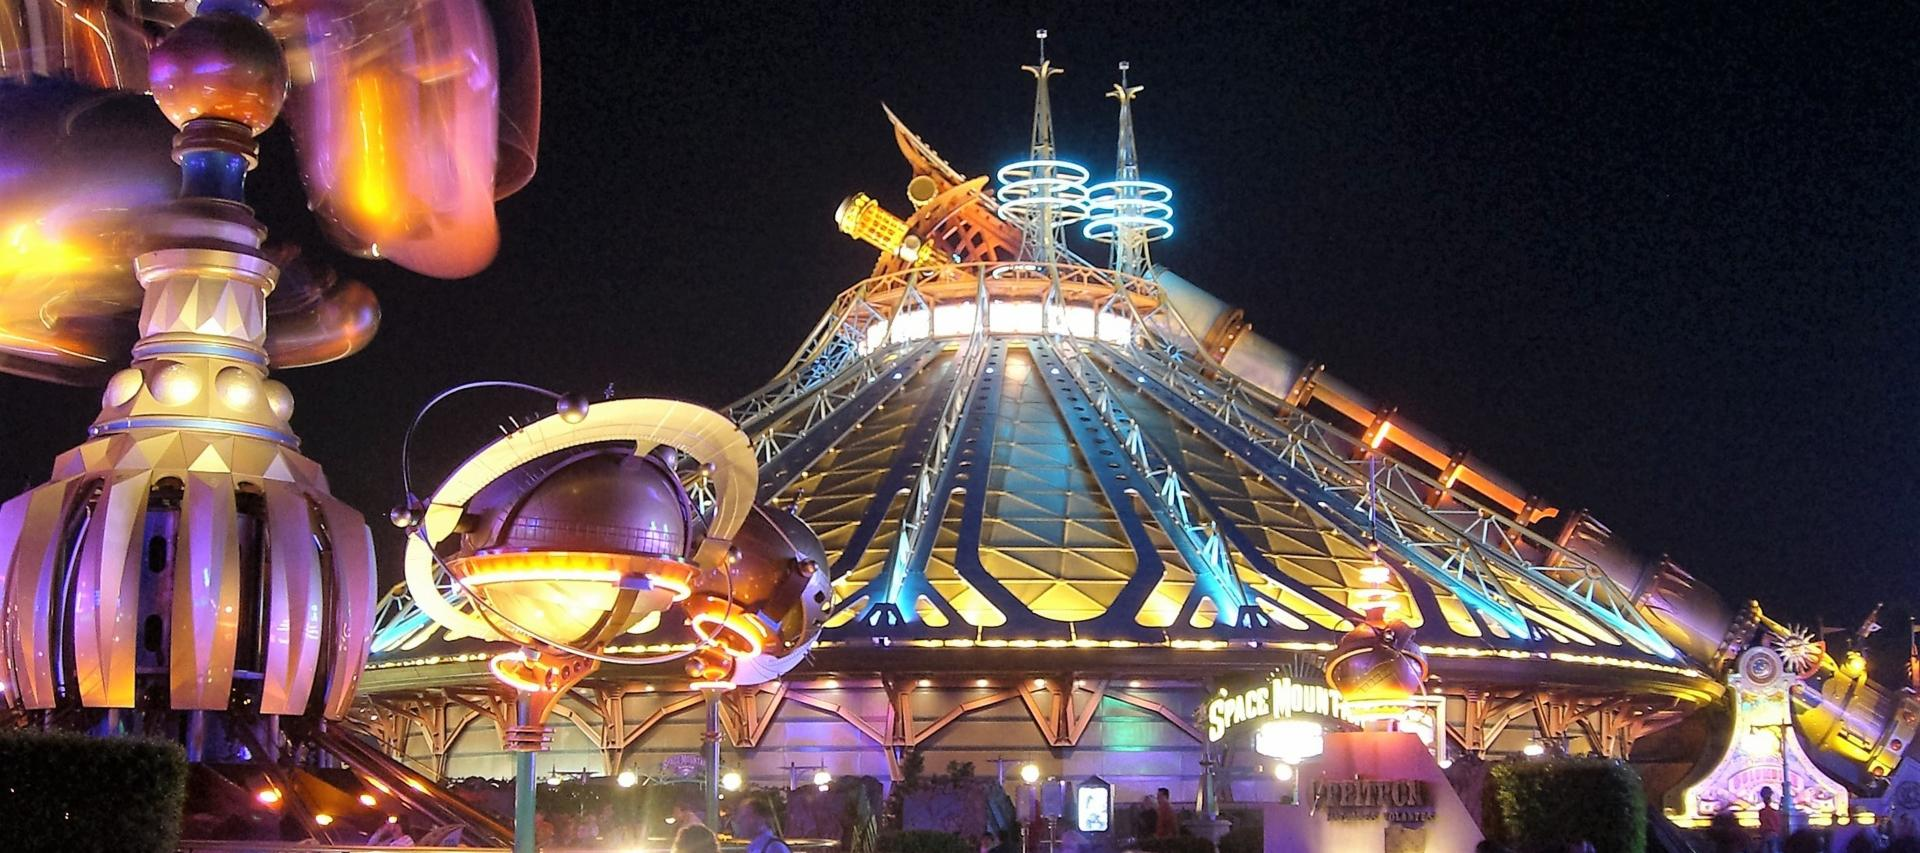 Hyperspace Attraction at Disneyland Paris